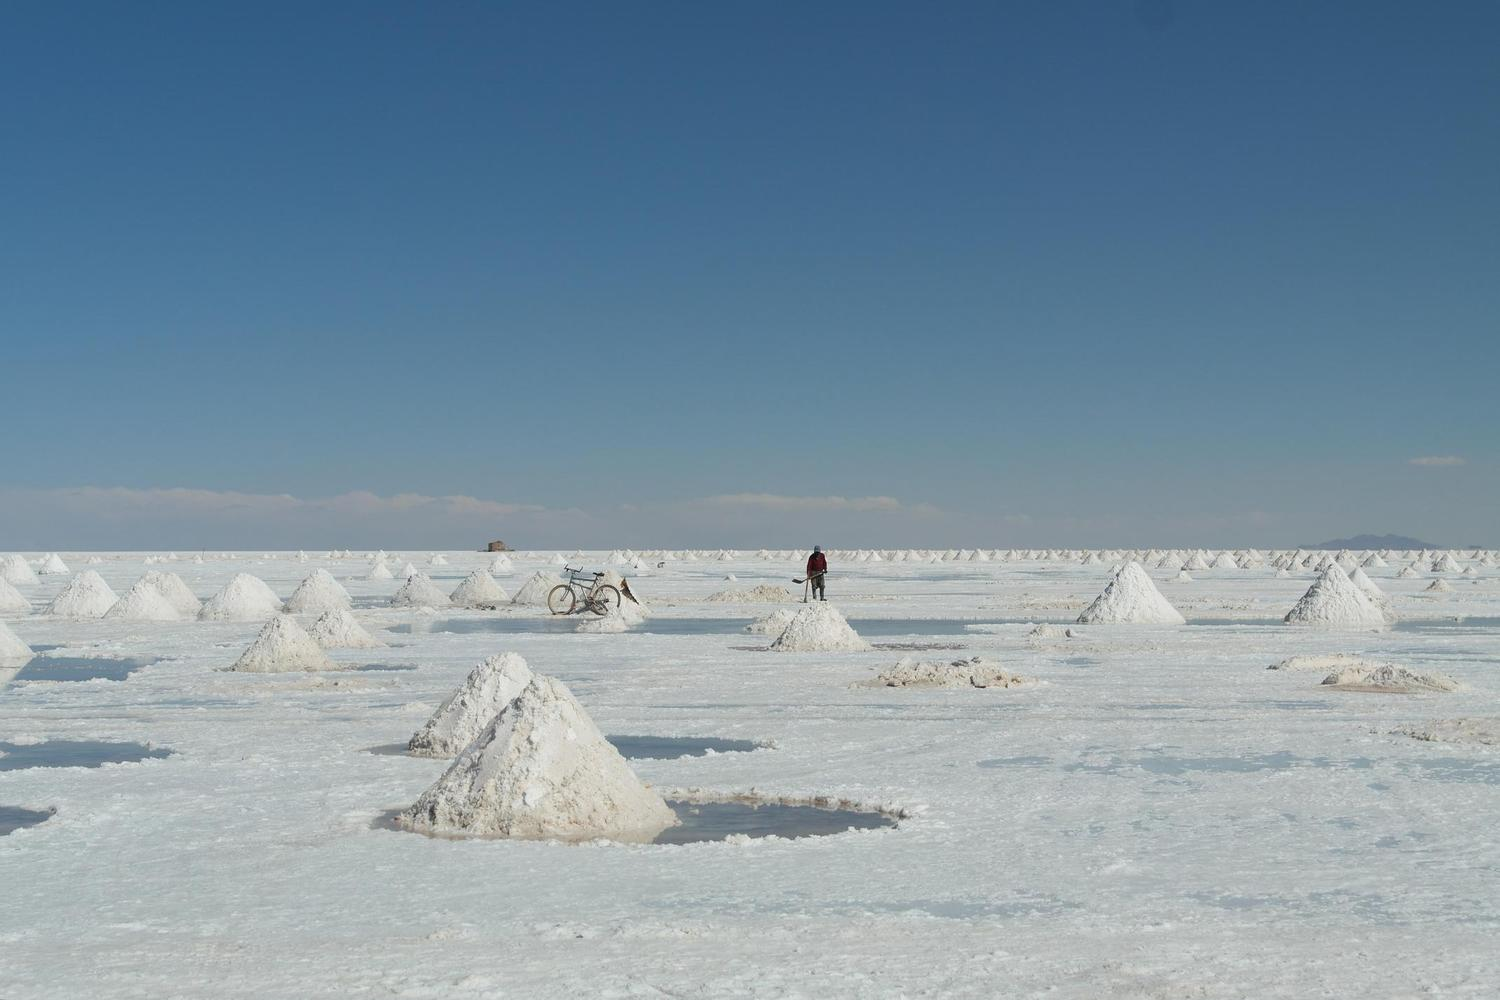 Back breaking work on the Uyuni Salt Flats